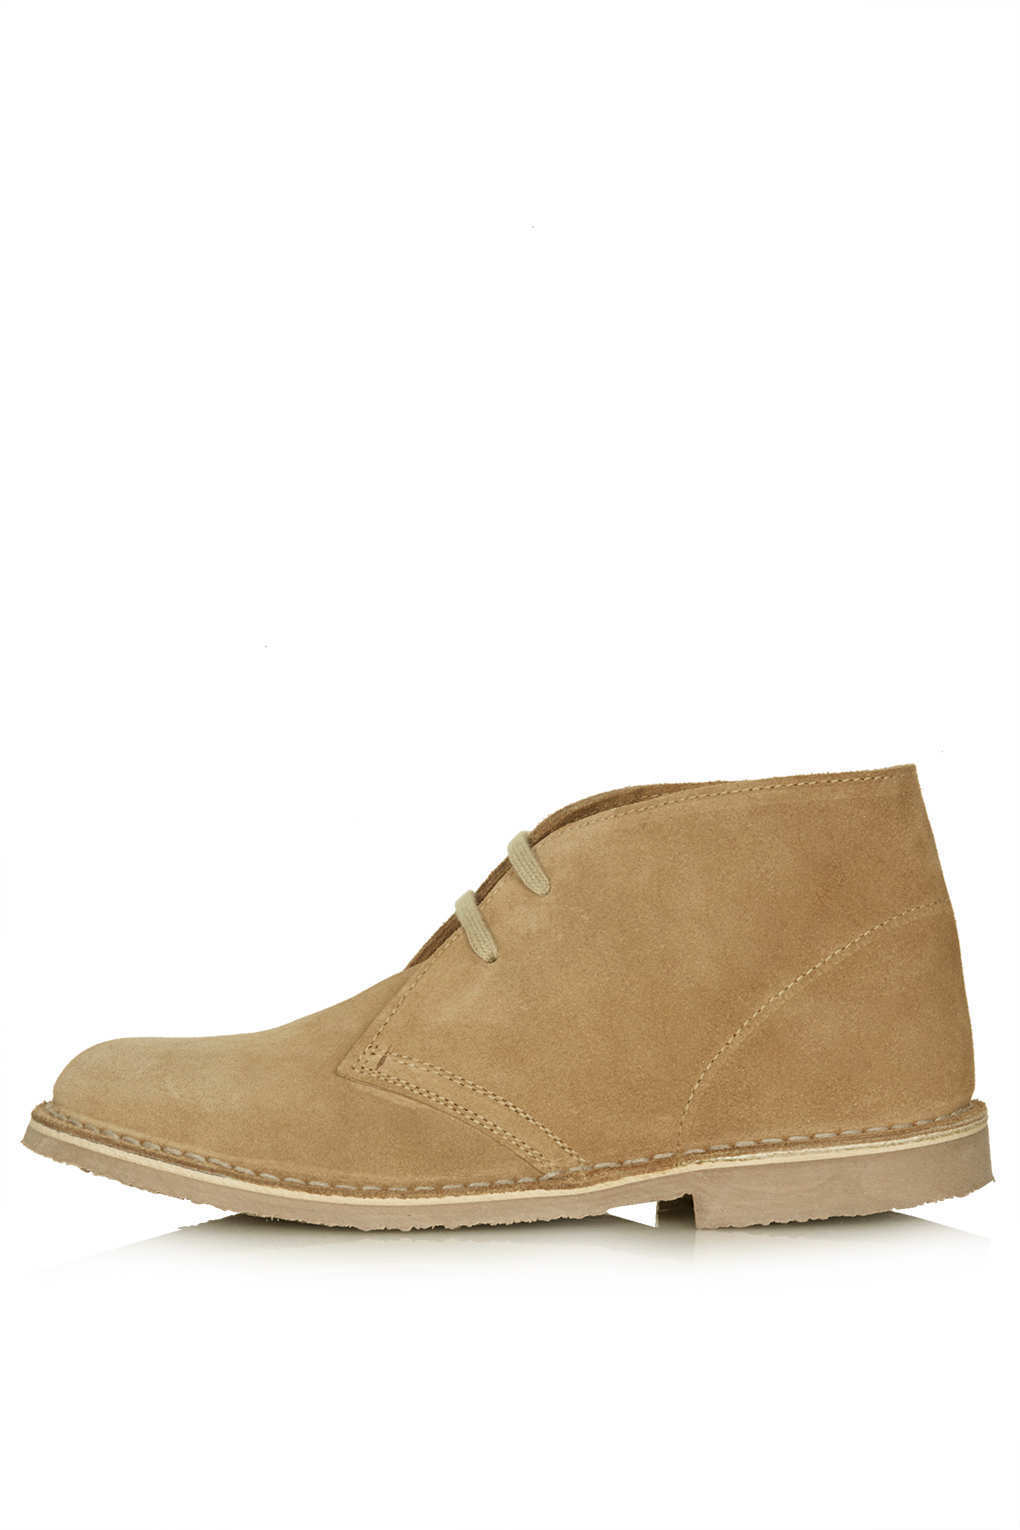 TOPSHOP BEACHY desert boots in Camel - New without box